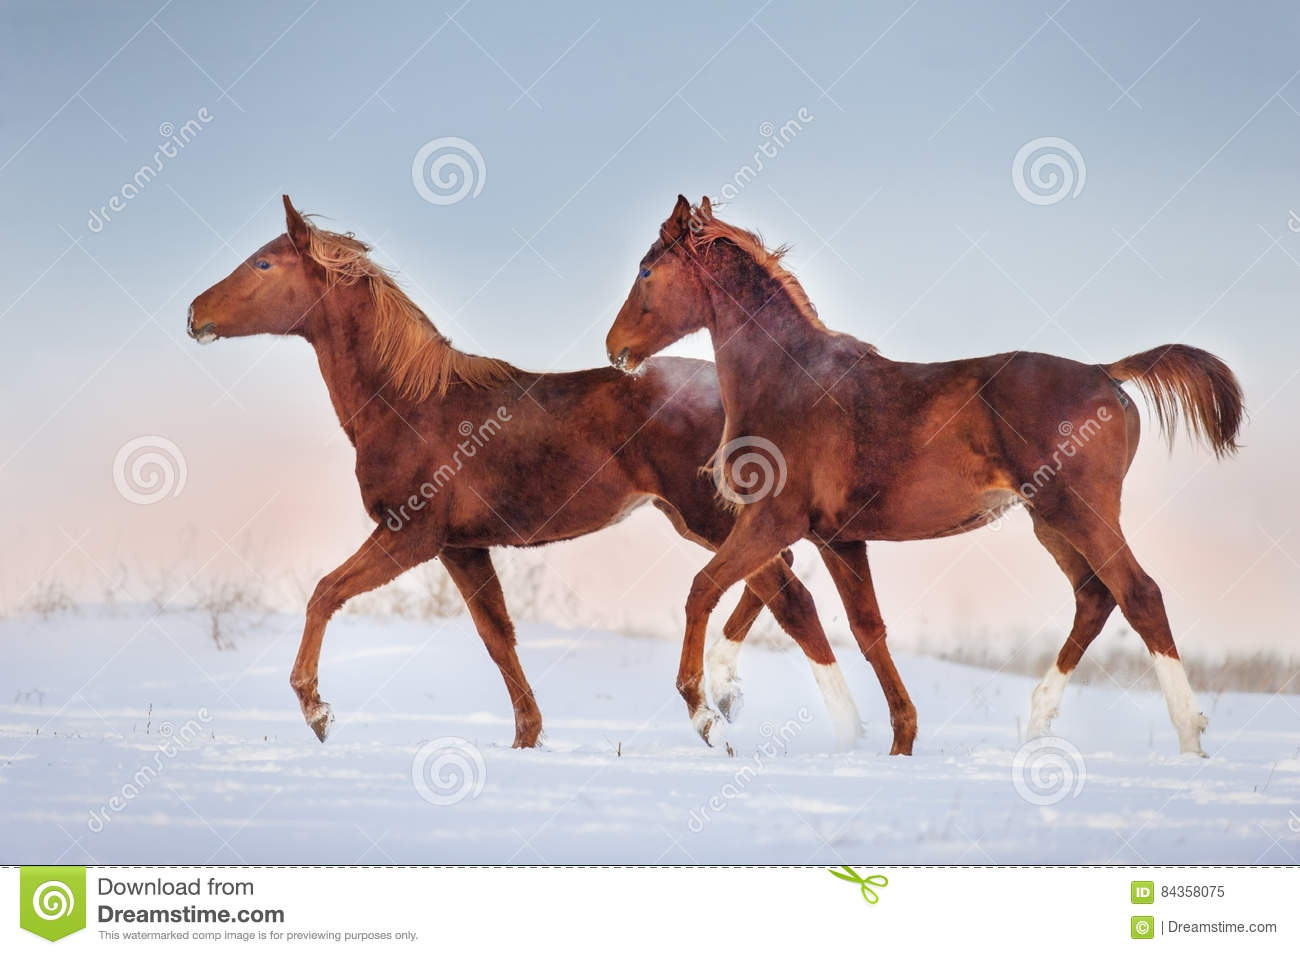 300 Two Red Horse Run Photos Free Royalty Free Stock Photos From Dreamstime